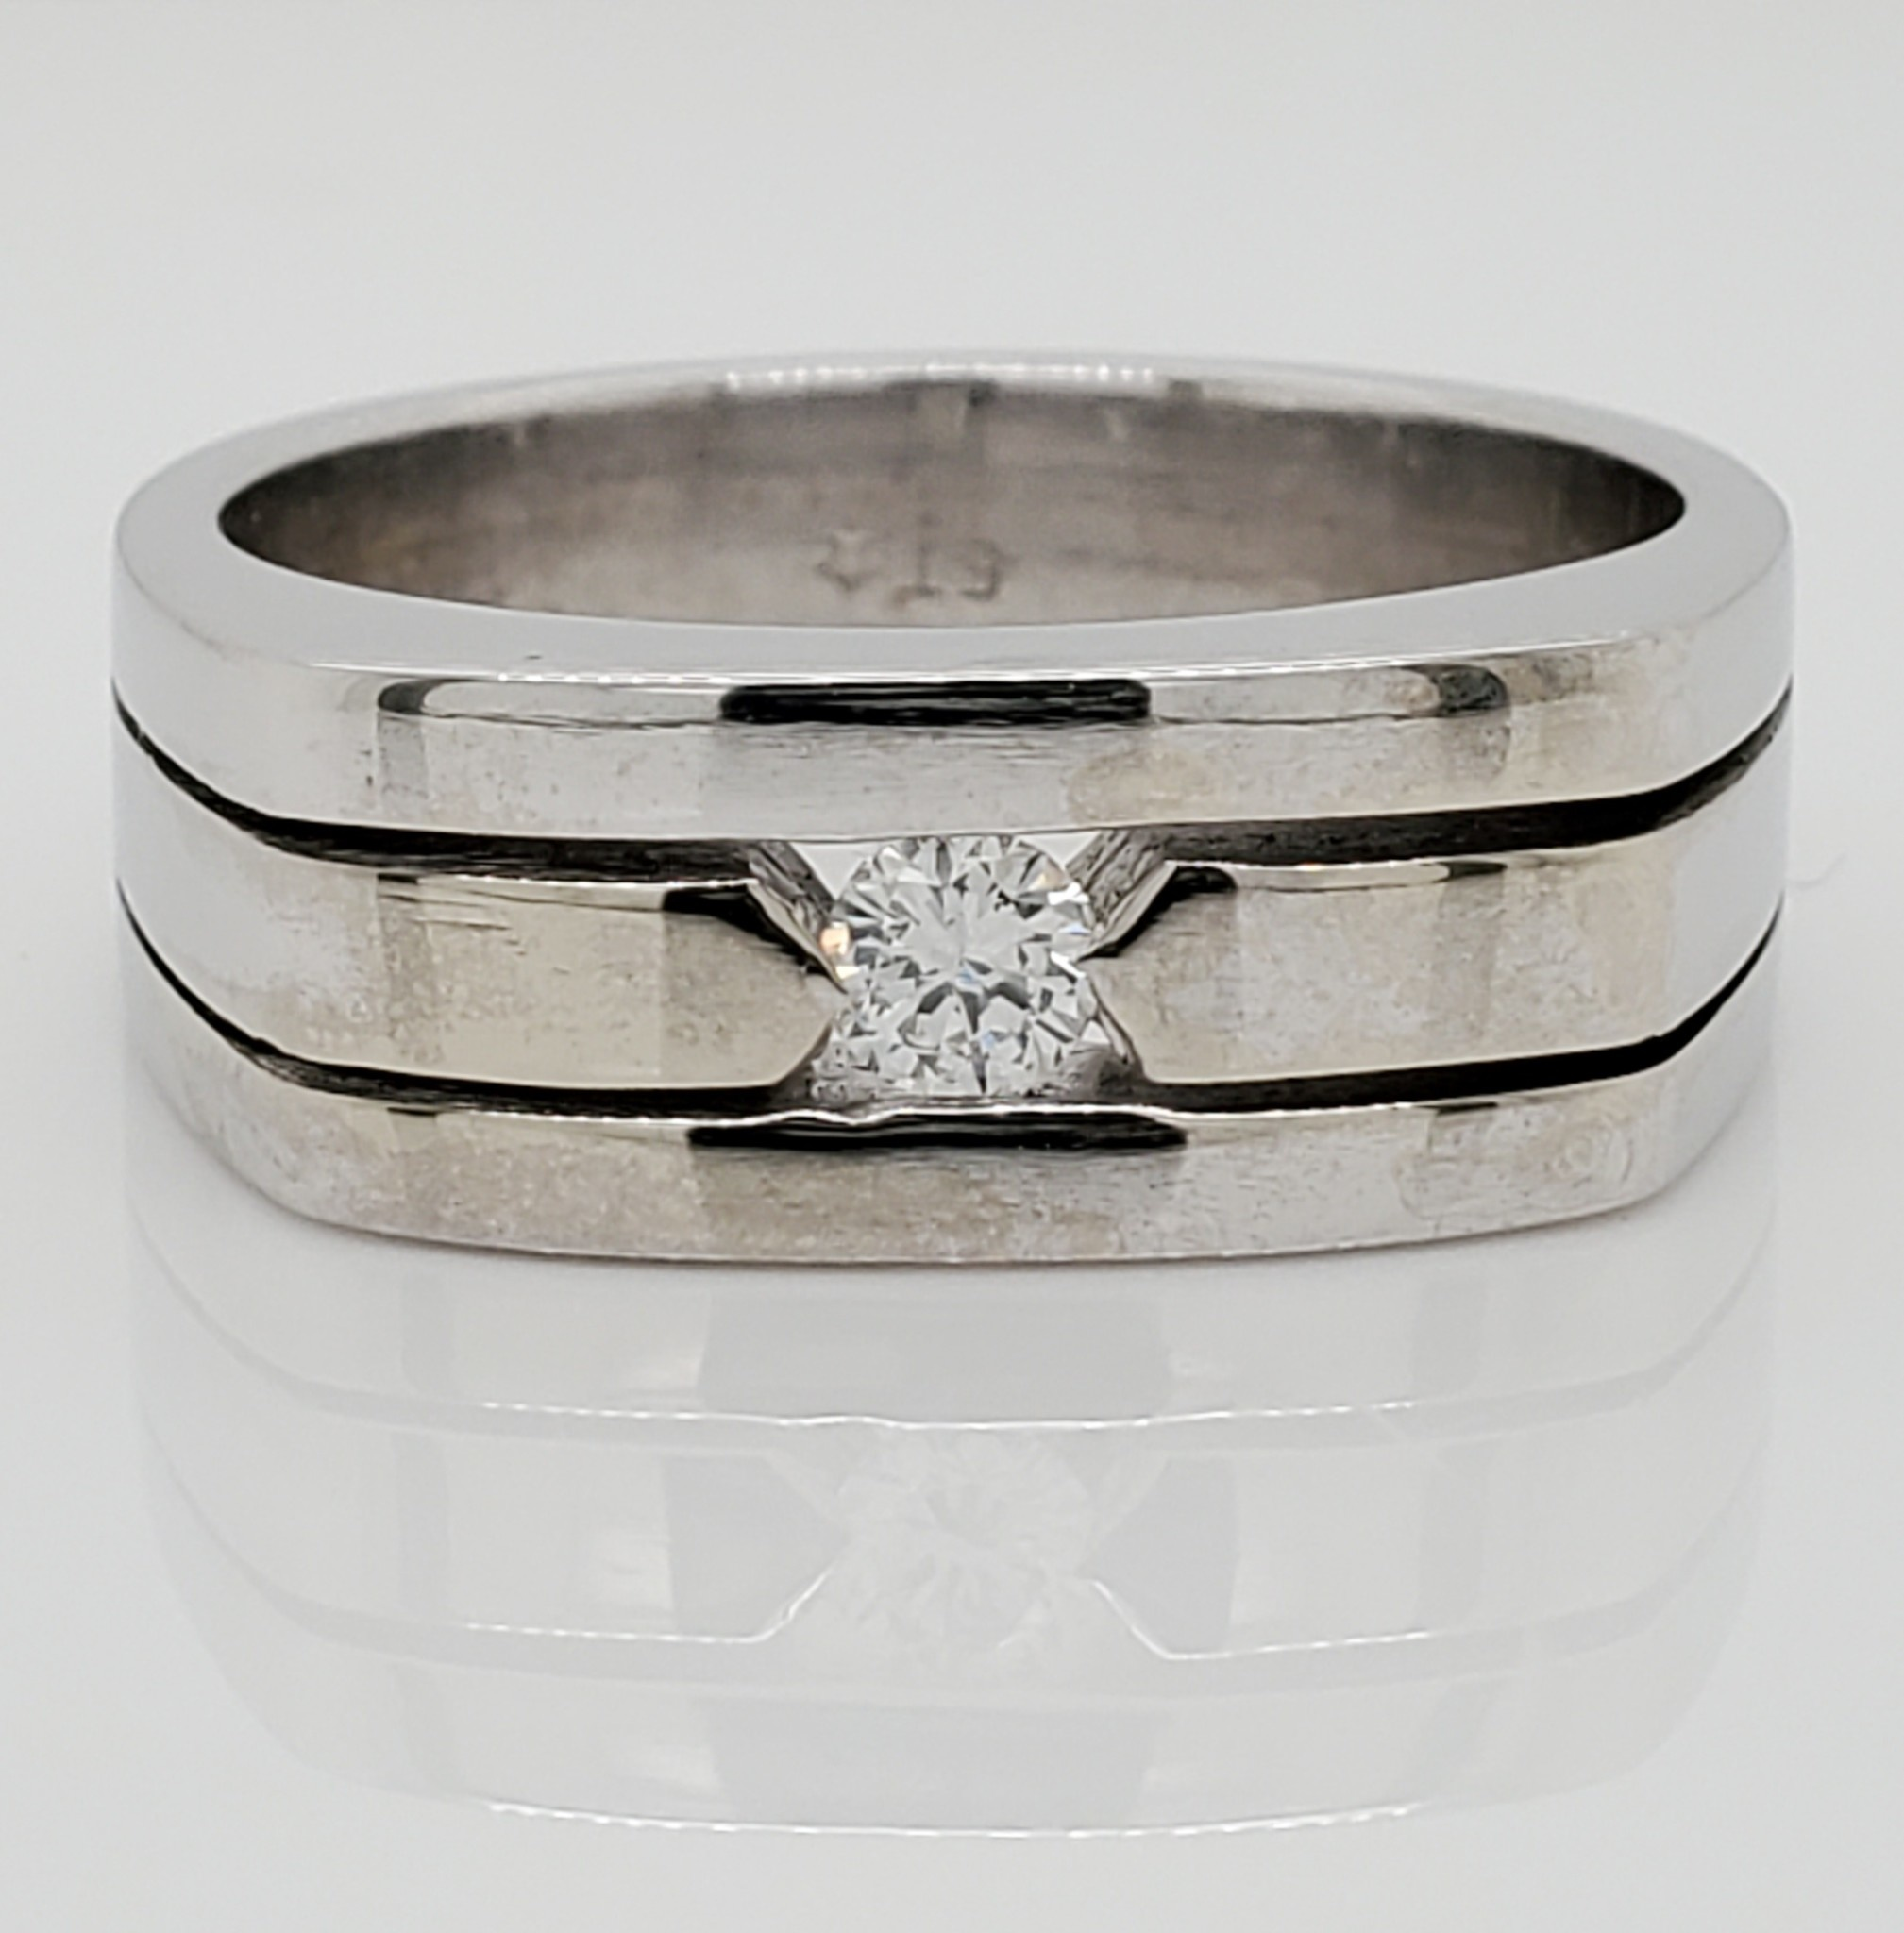 14KT White Gold Men's Ring with 3.25mm Round Diamond